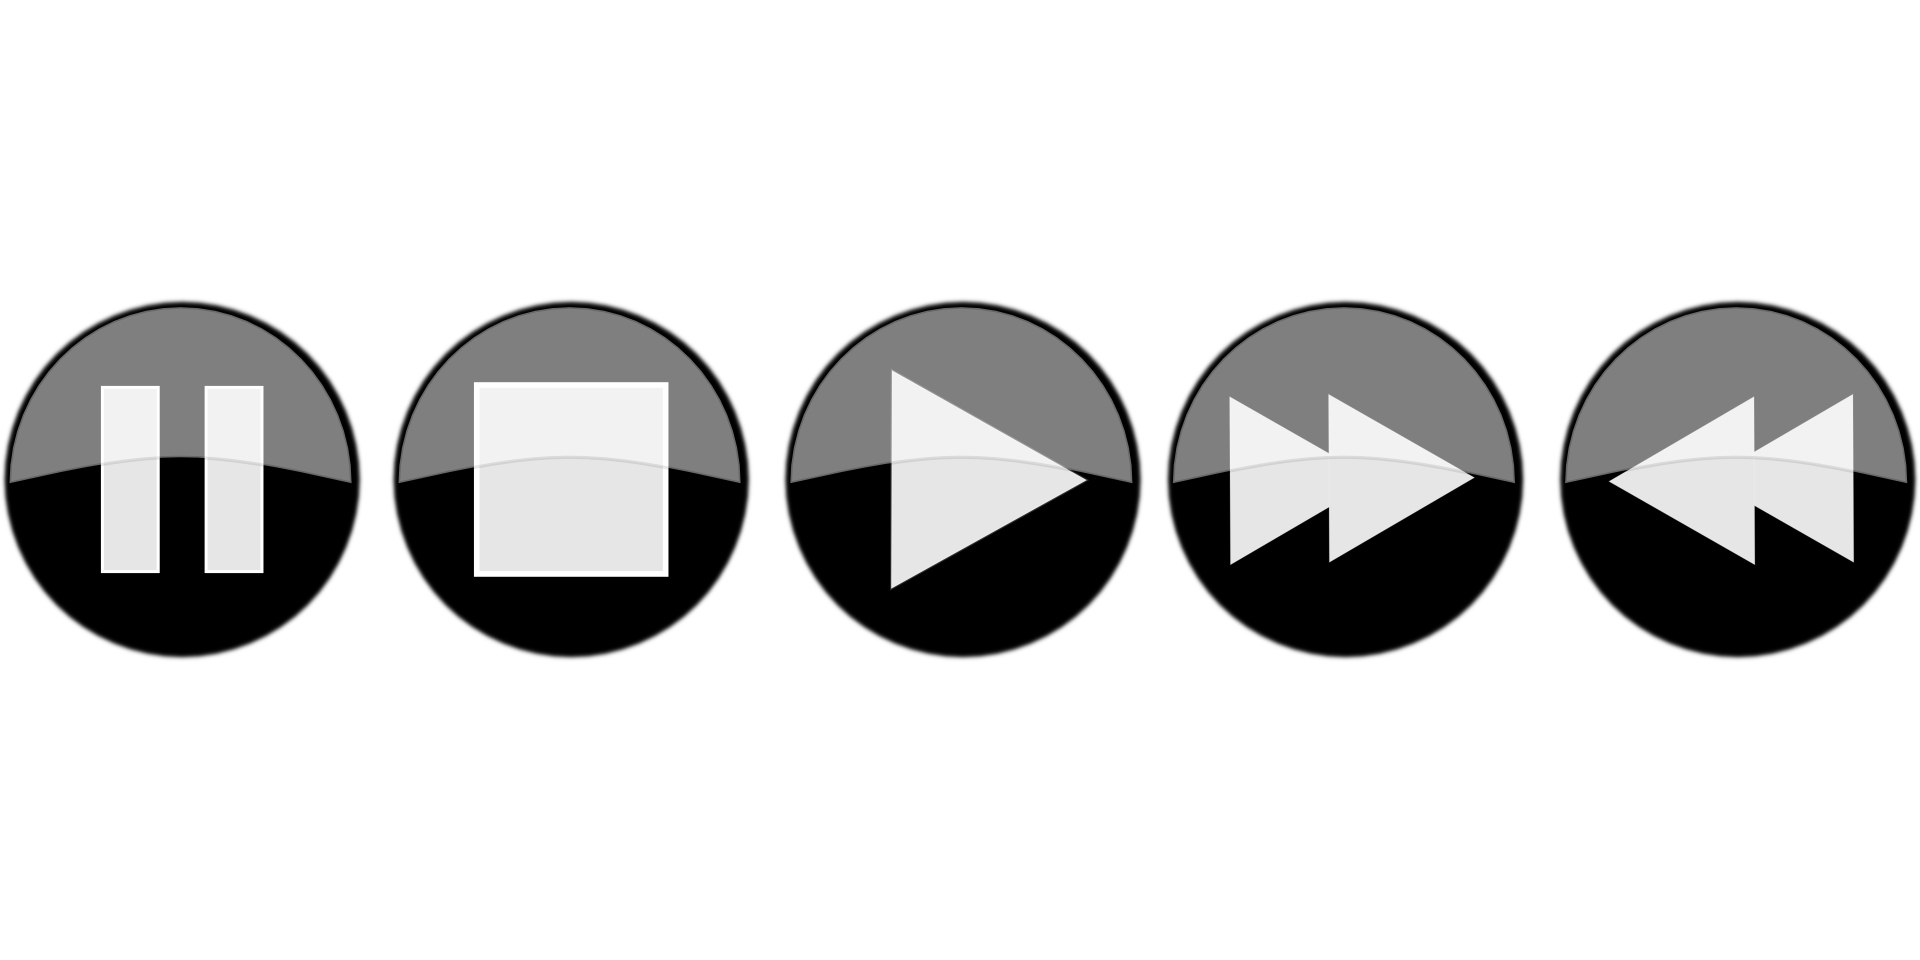 Media Player-Pause, fast forward, backward button icon vector